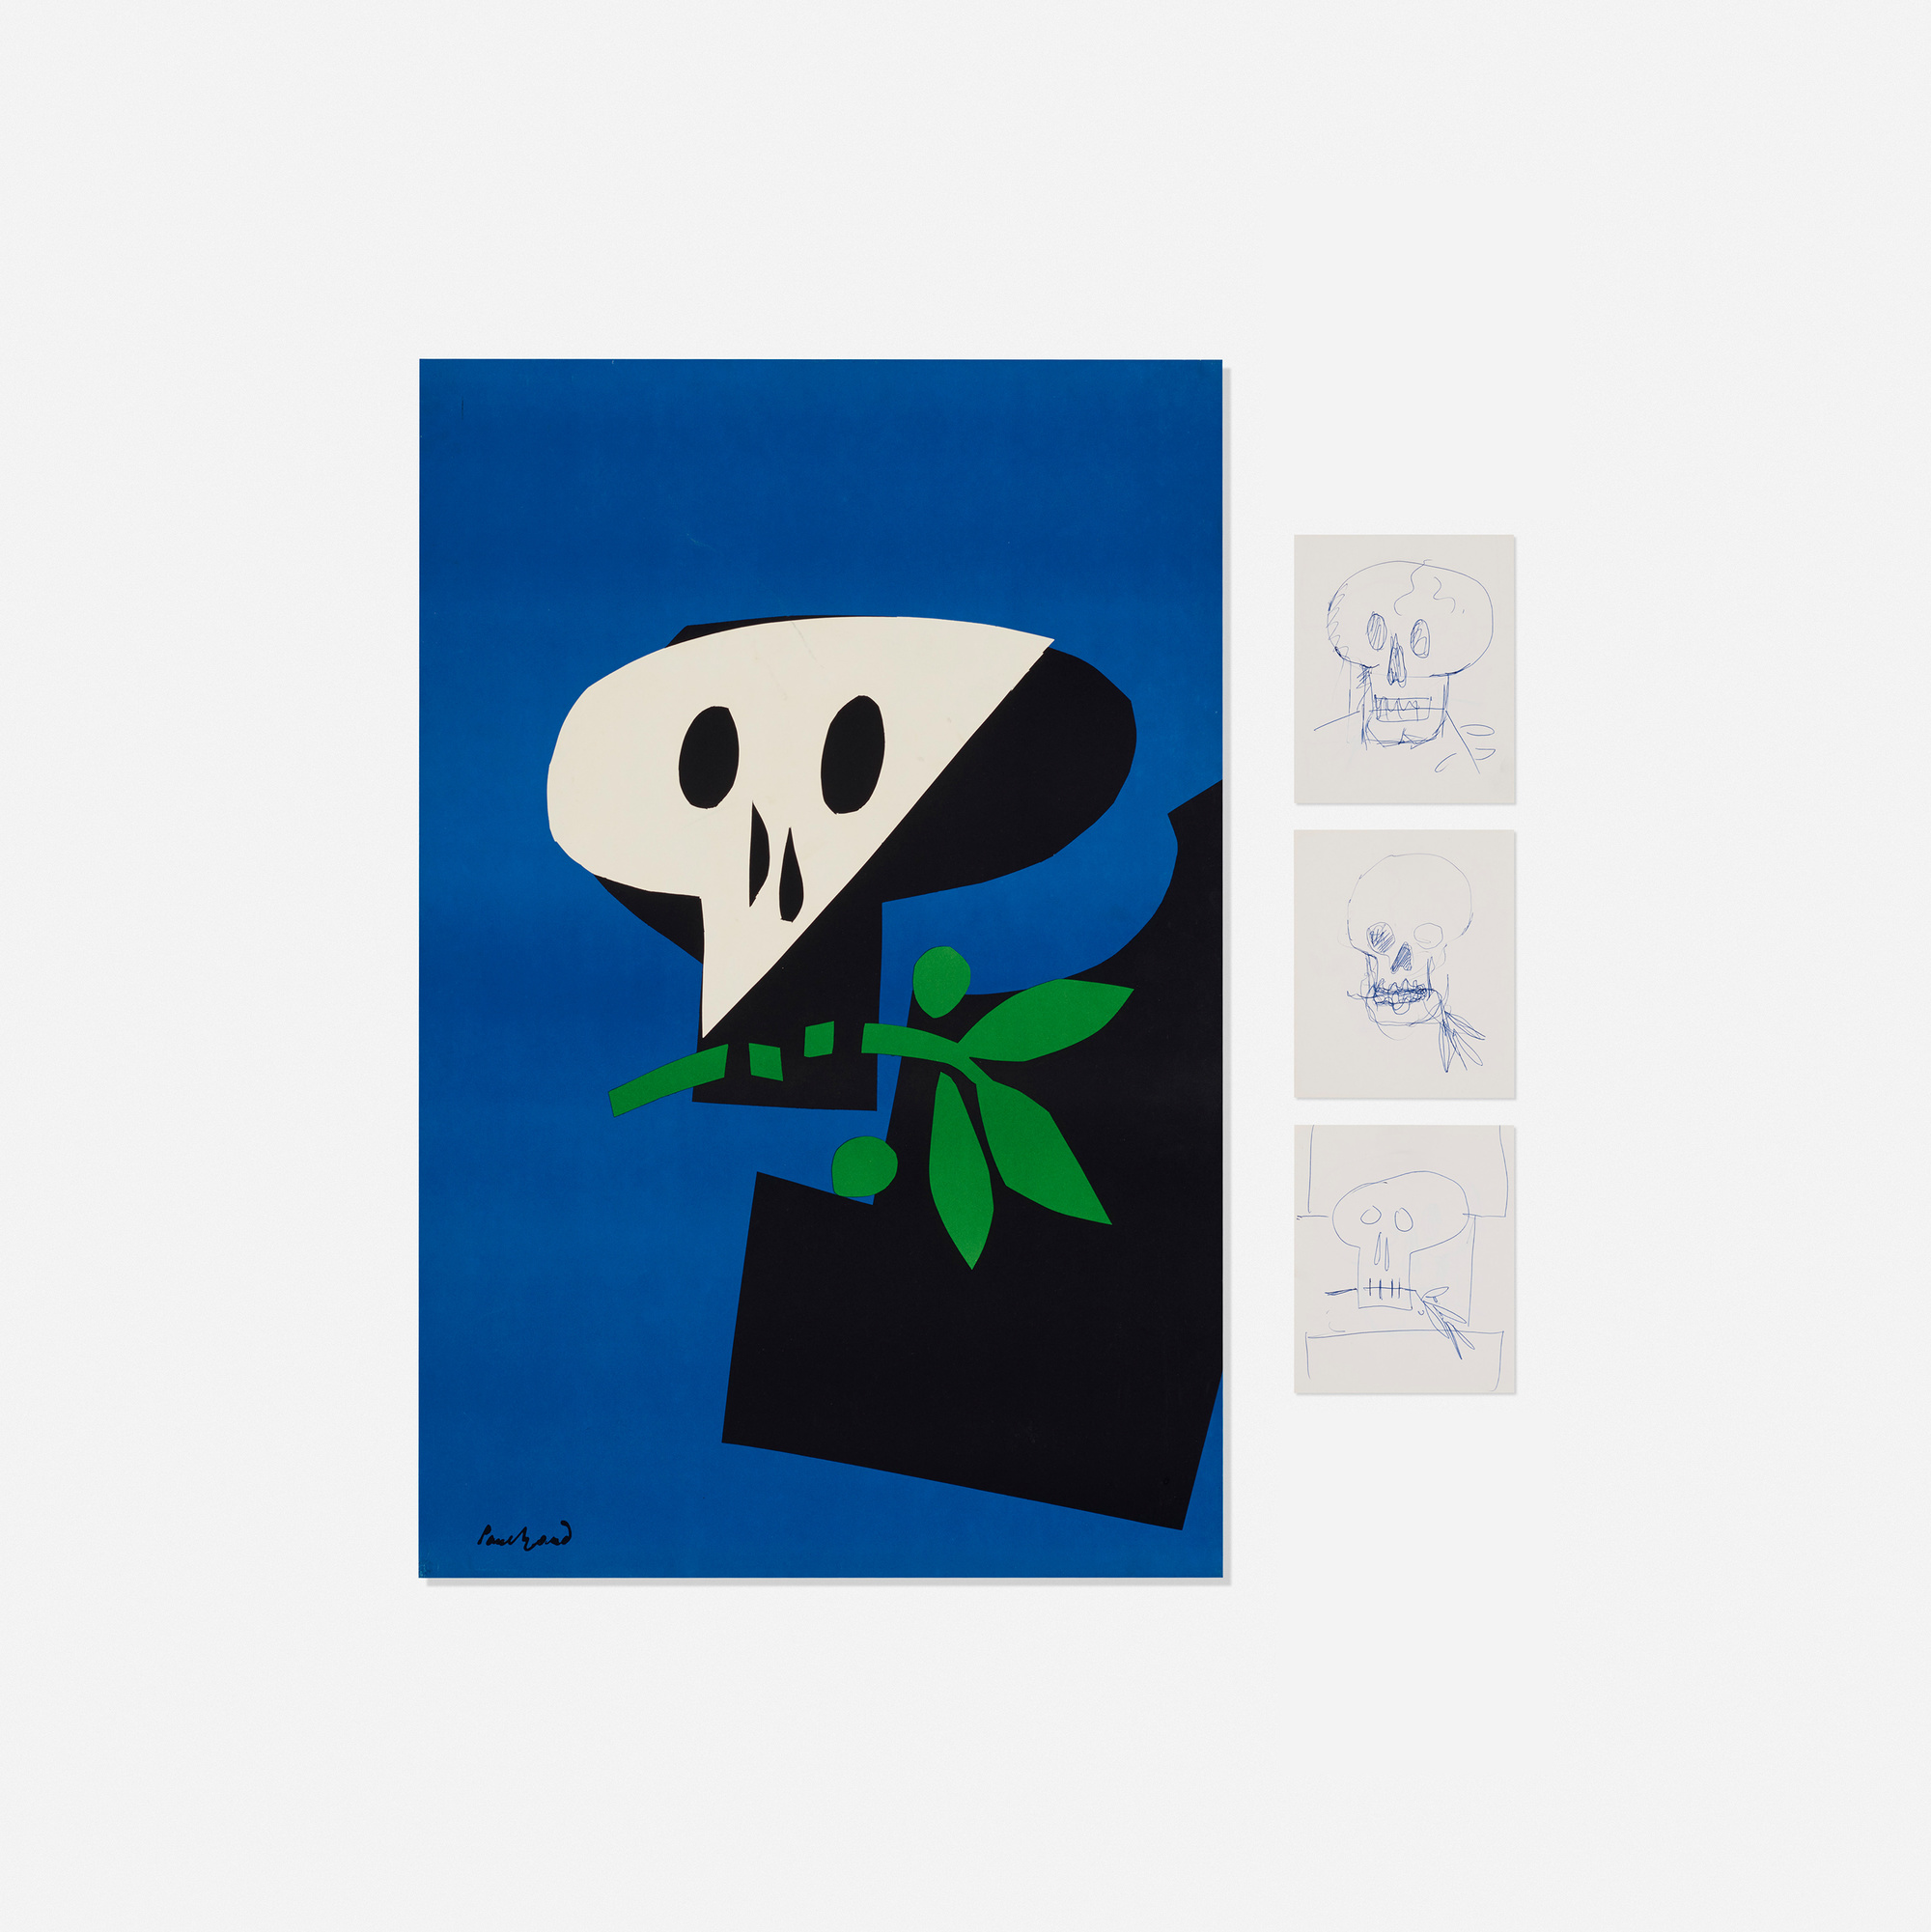 332 paul rand death mask poster and drawings 1 of 1